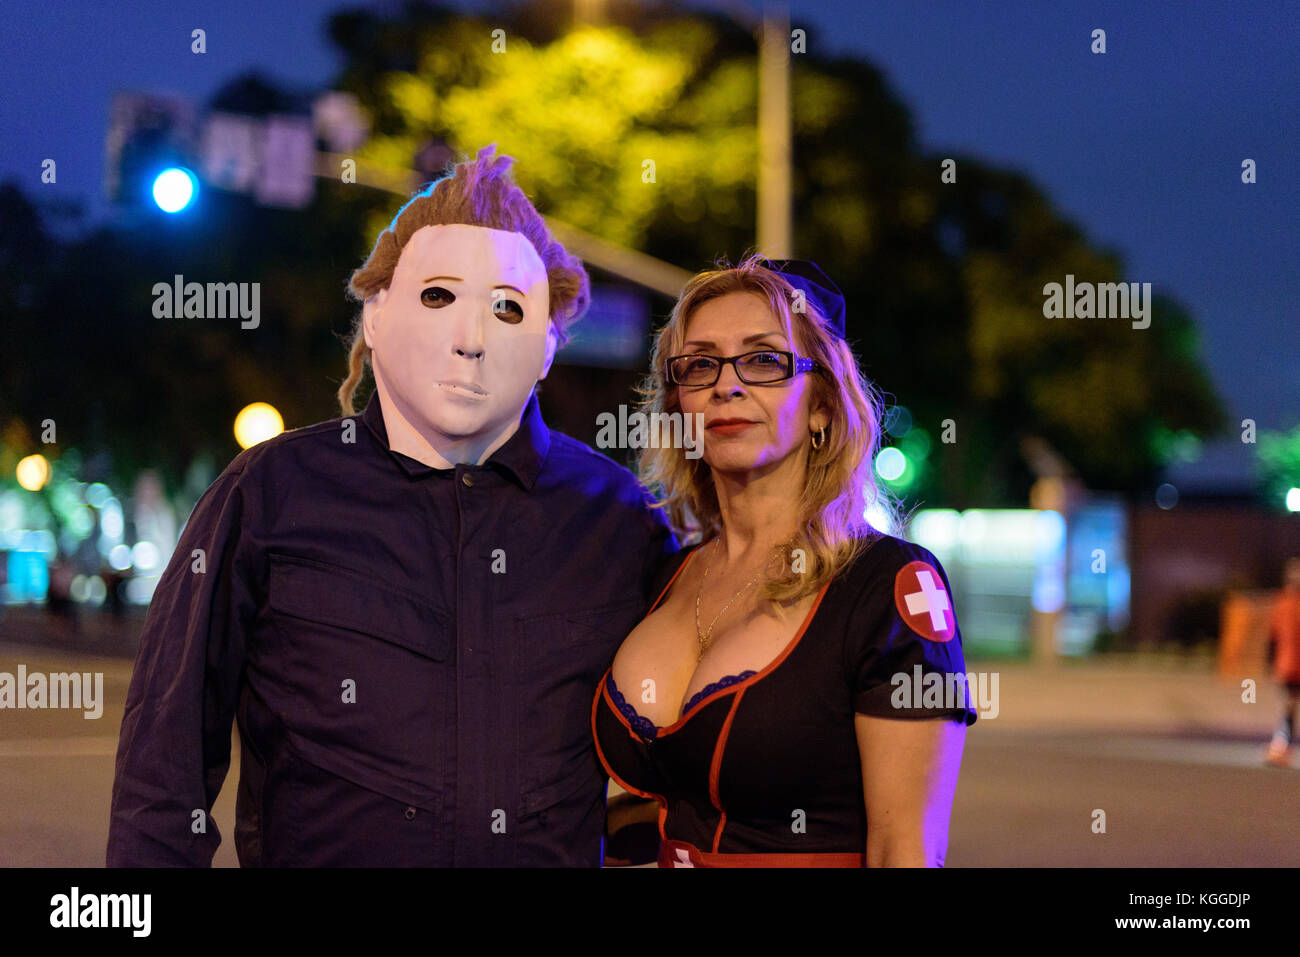 Los Angeles October 31 Halloween Parade In West Hollywood October Stock Photo Alamy